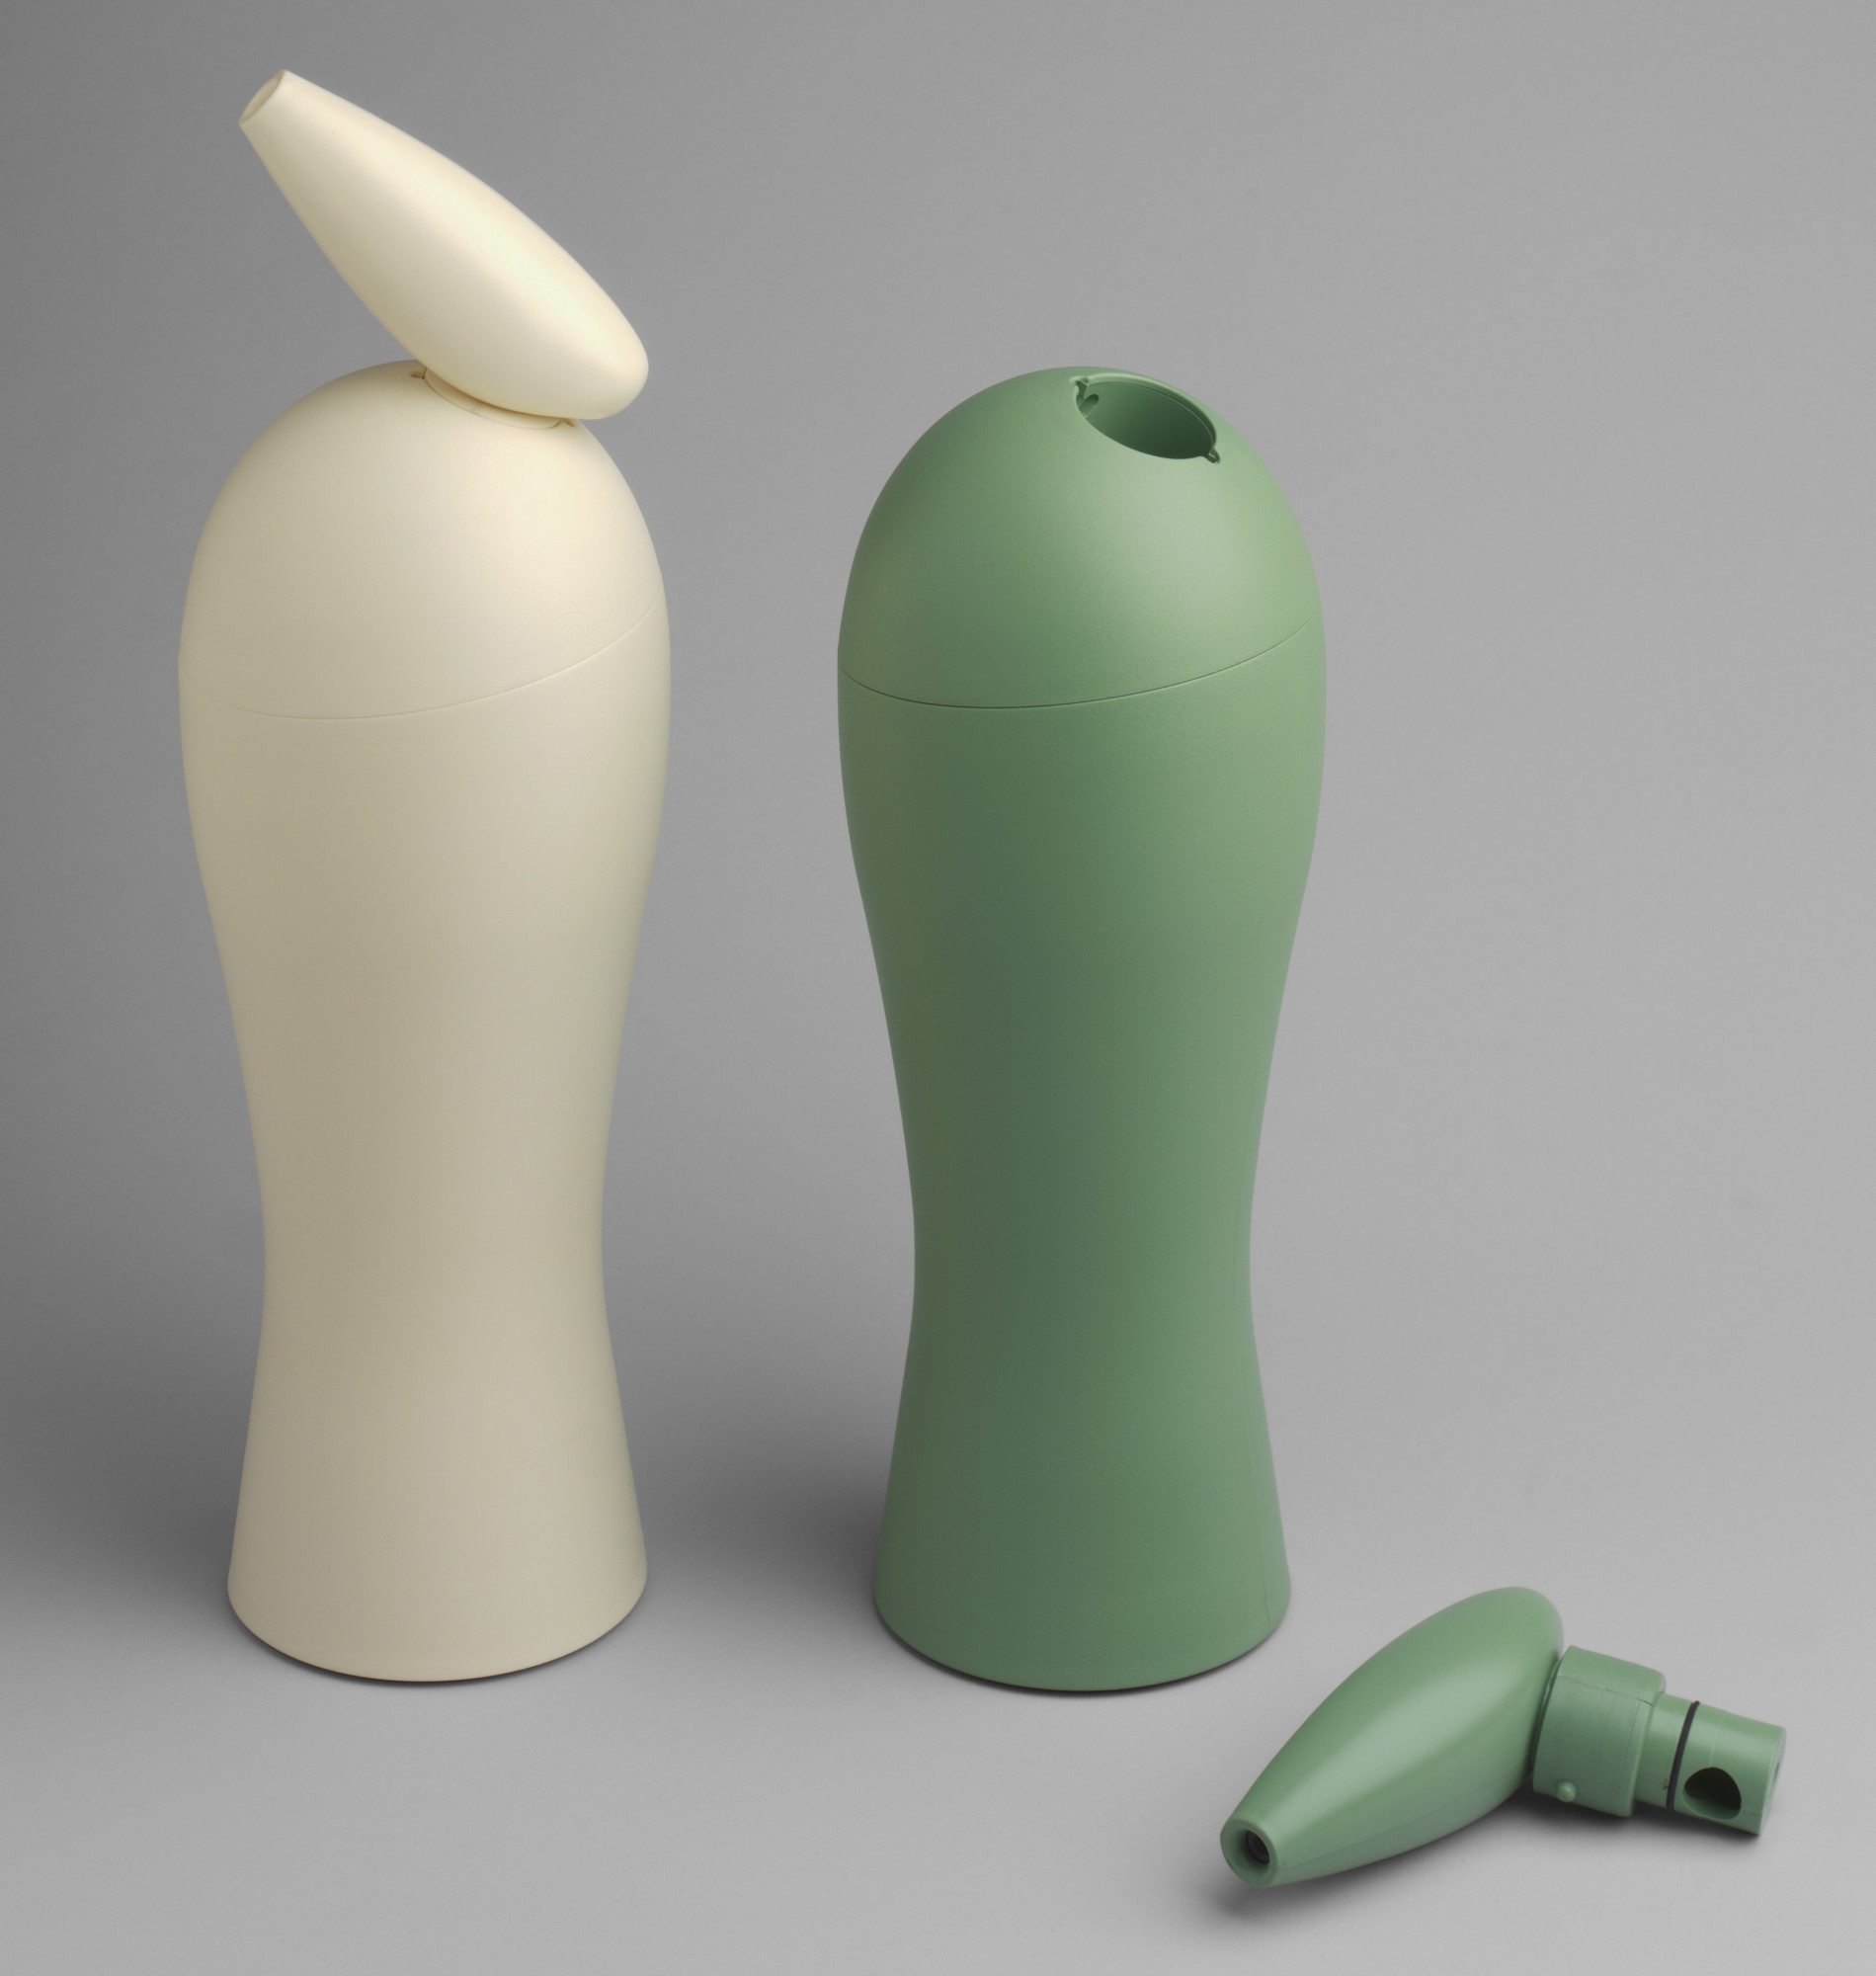 Philippe Starck. Hot Fredo Thermos. 1993